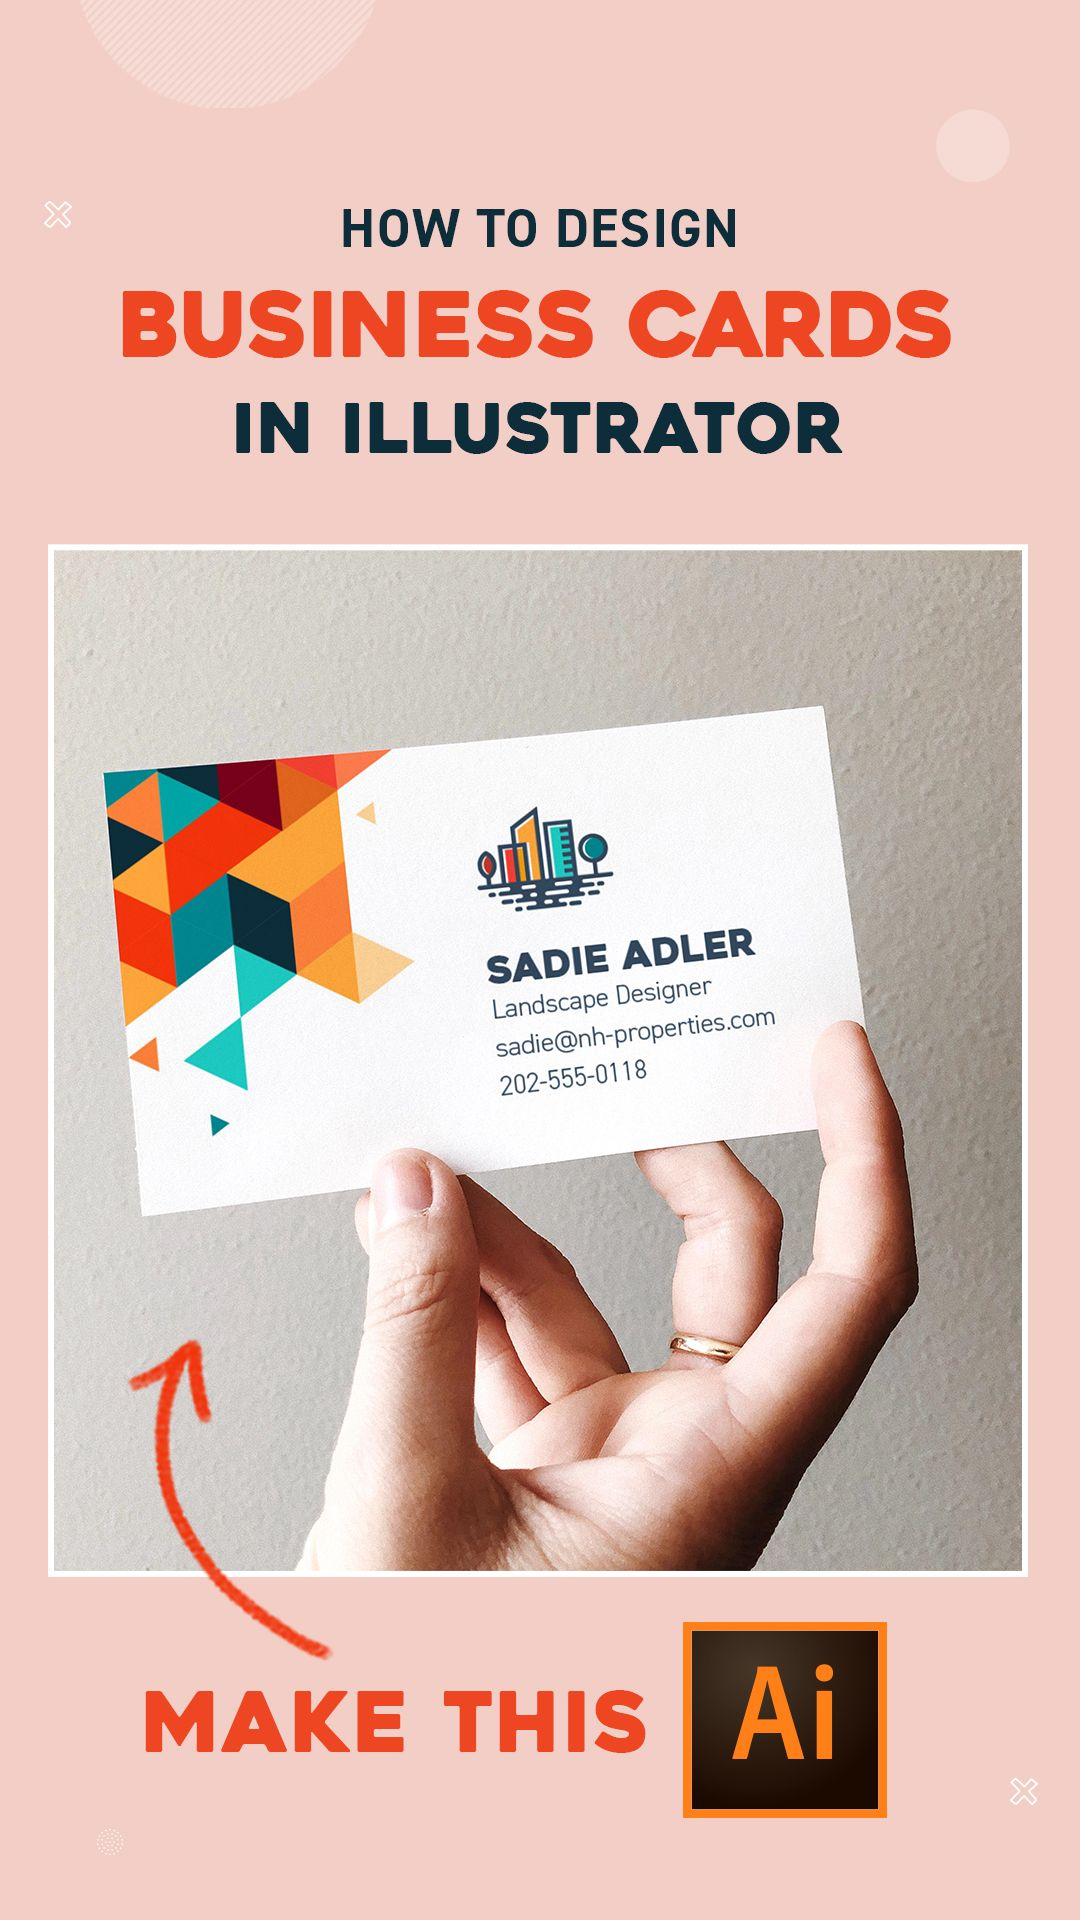 Guide To Business Cards Design With Illustrator Cc Create Business Cards Business Card Design Business Card Mock Up